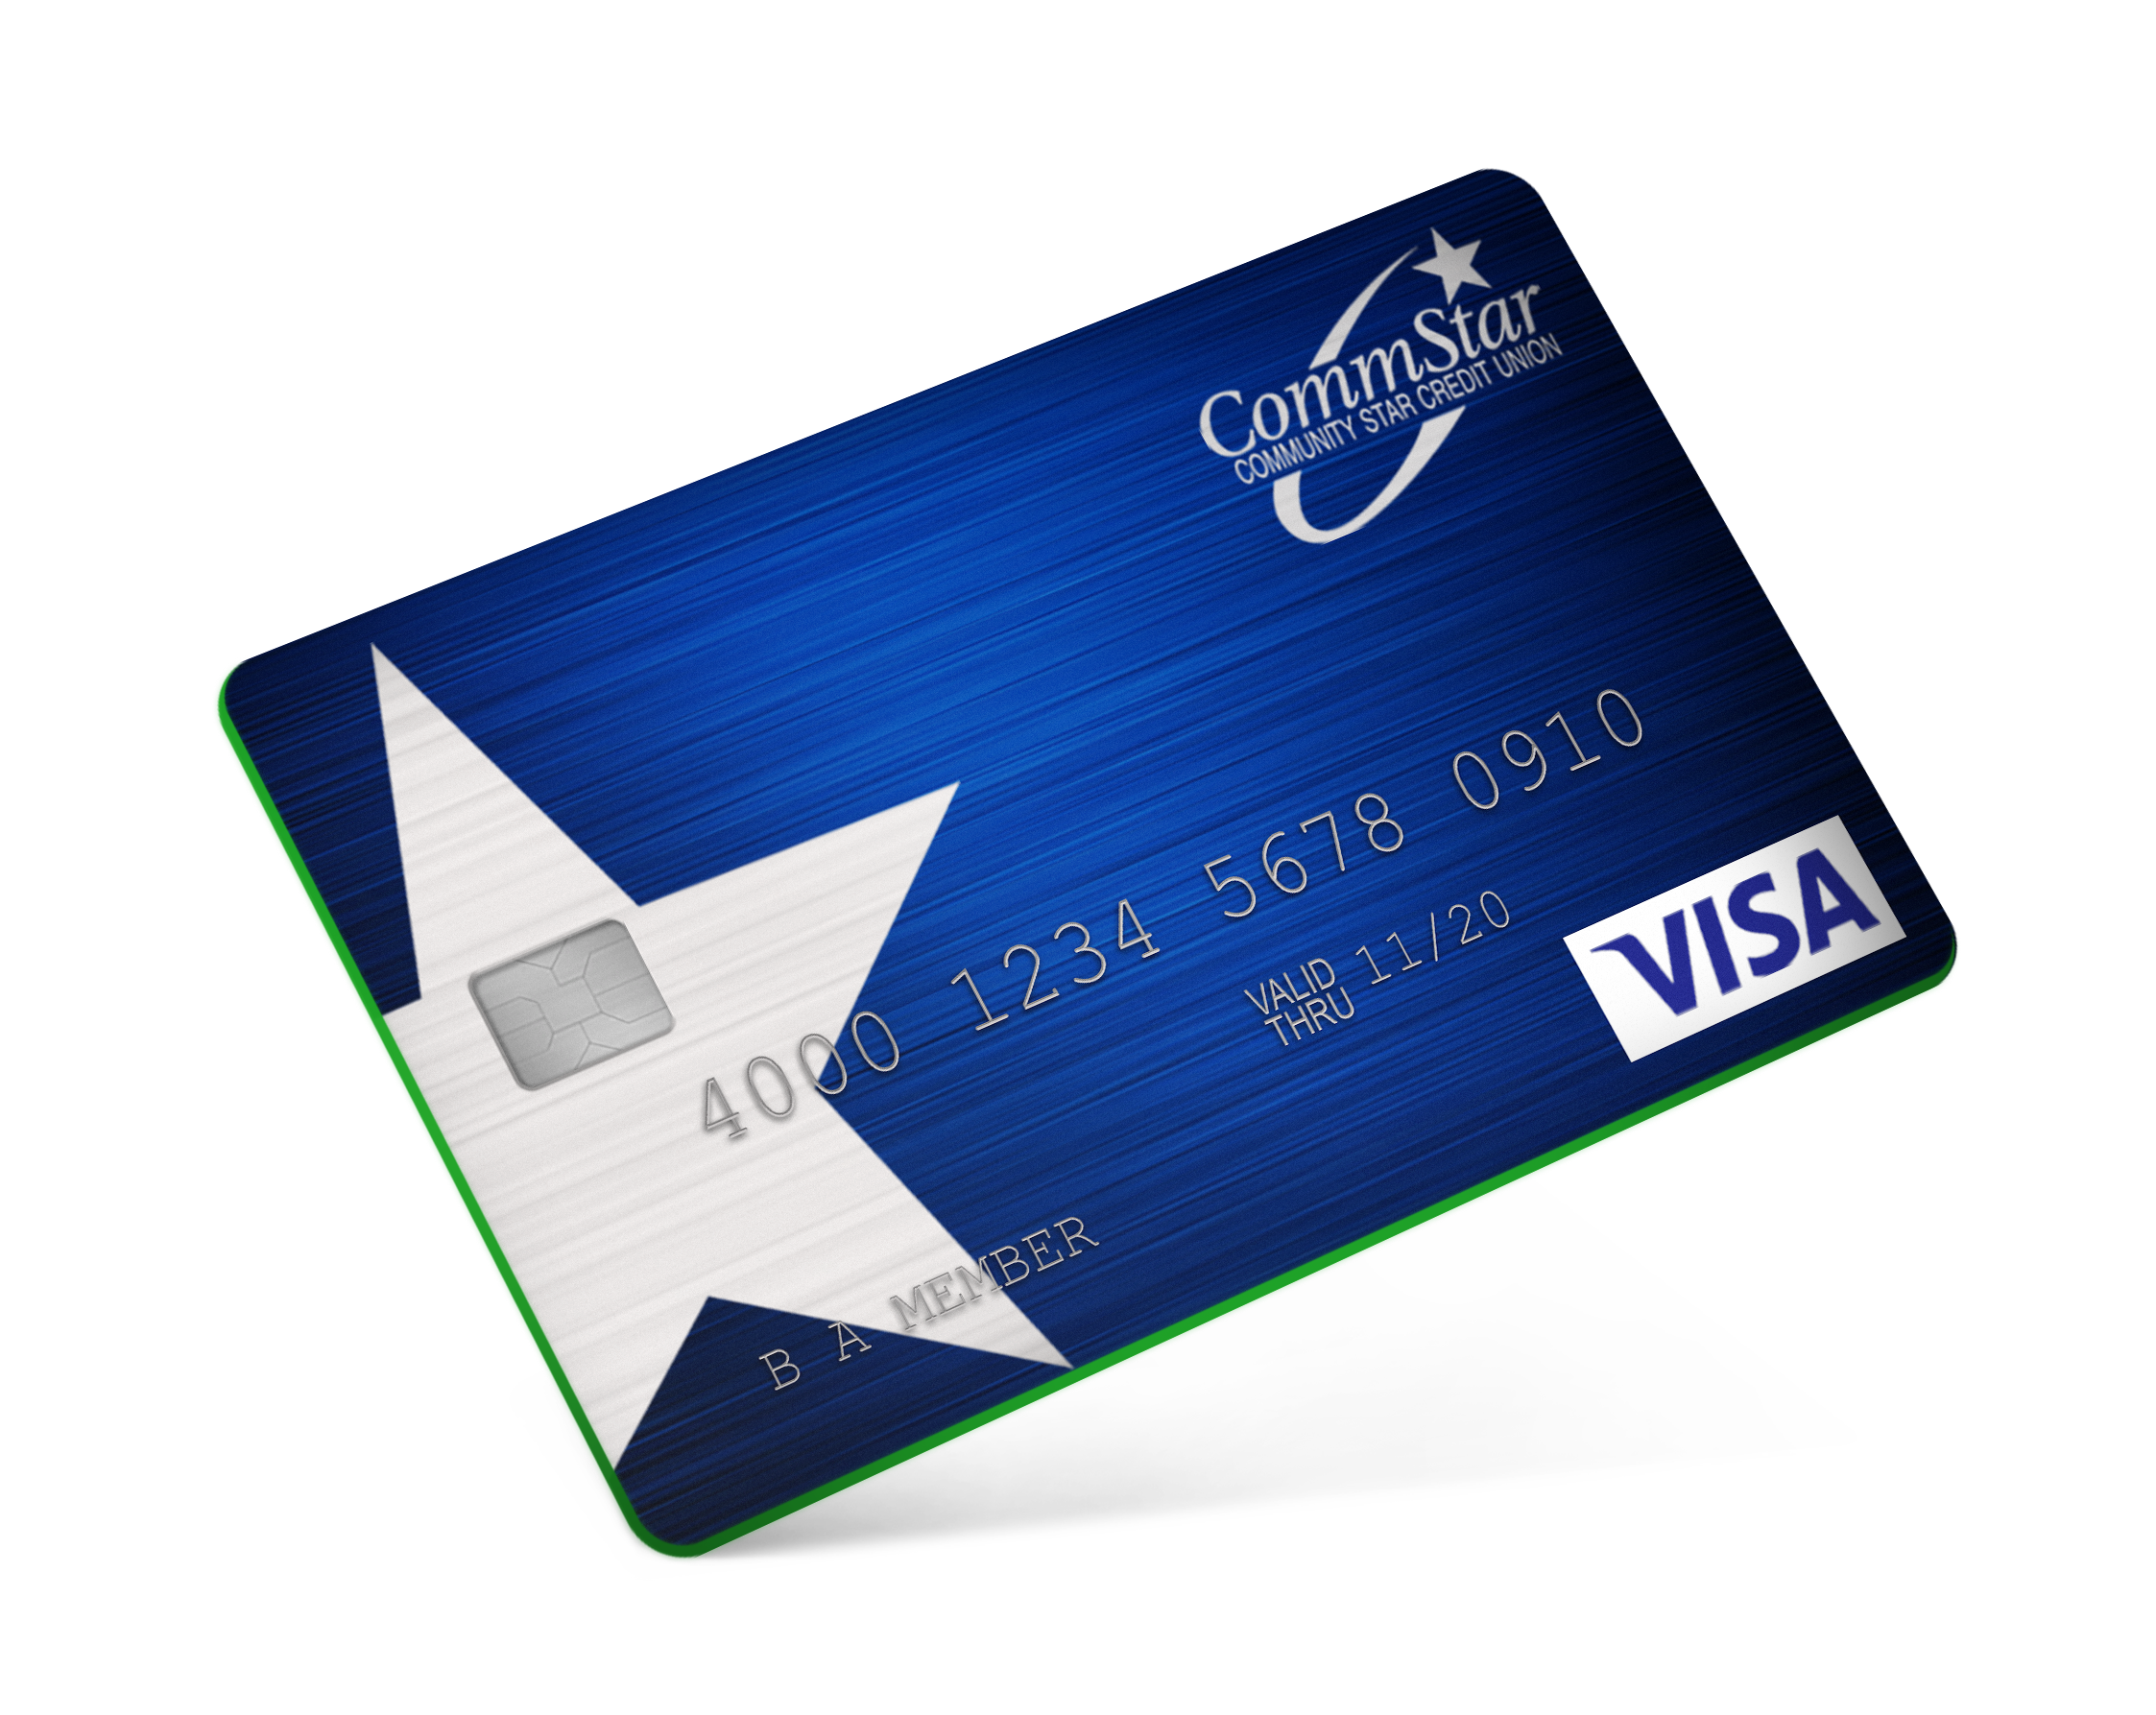 Image: blue and green credit card